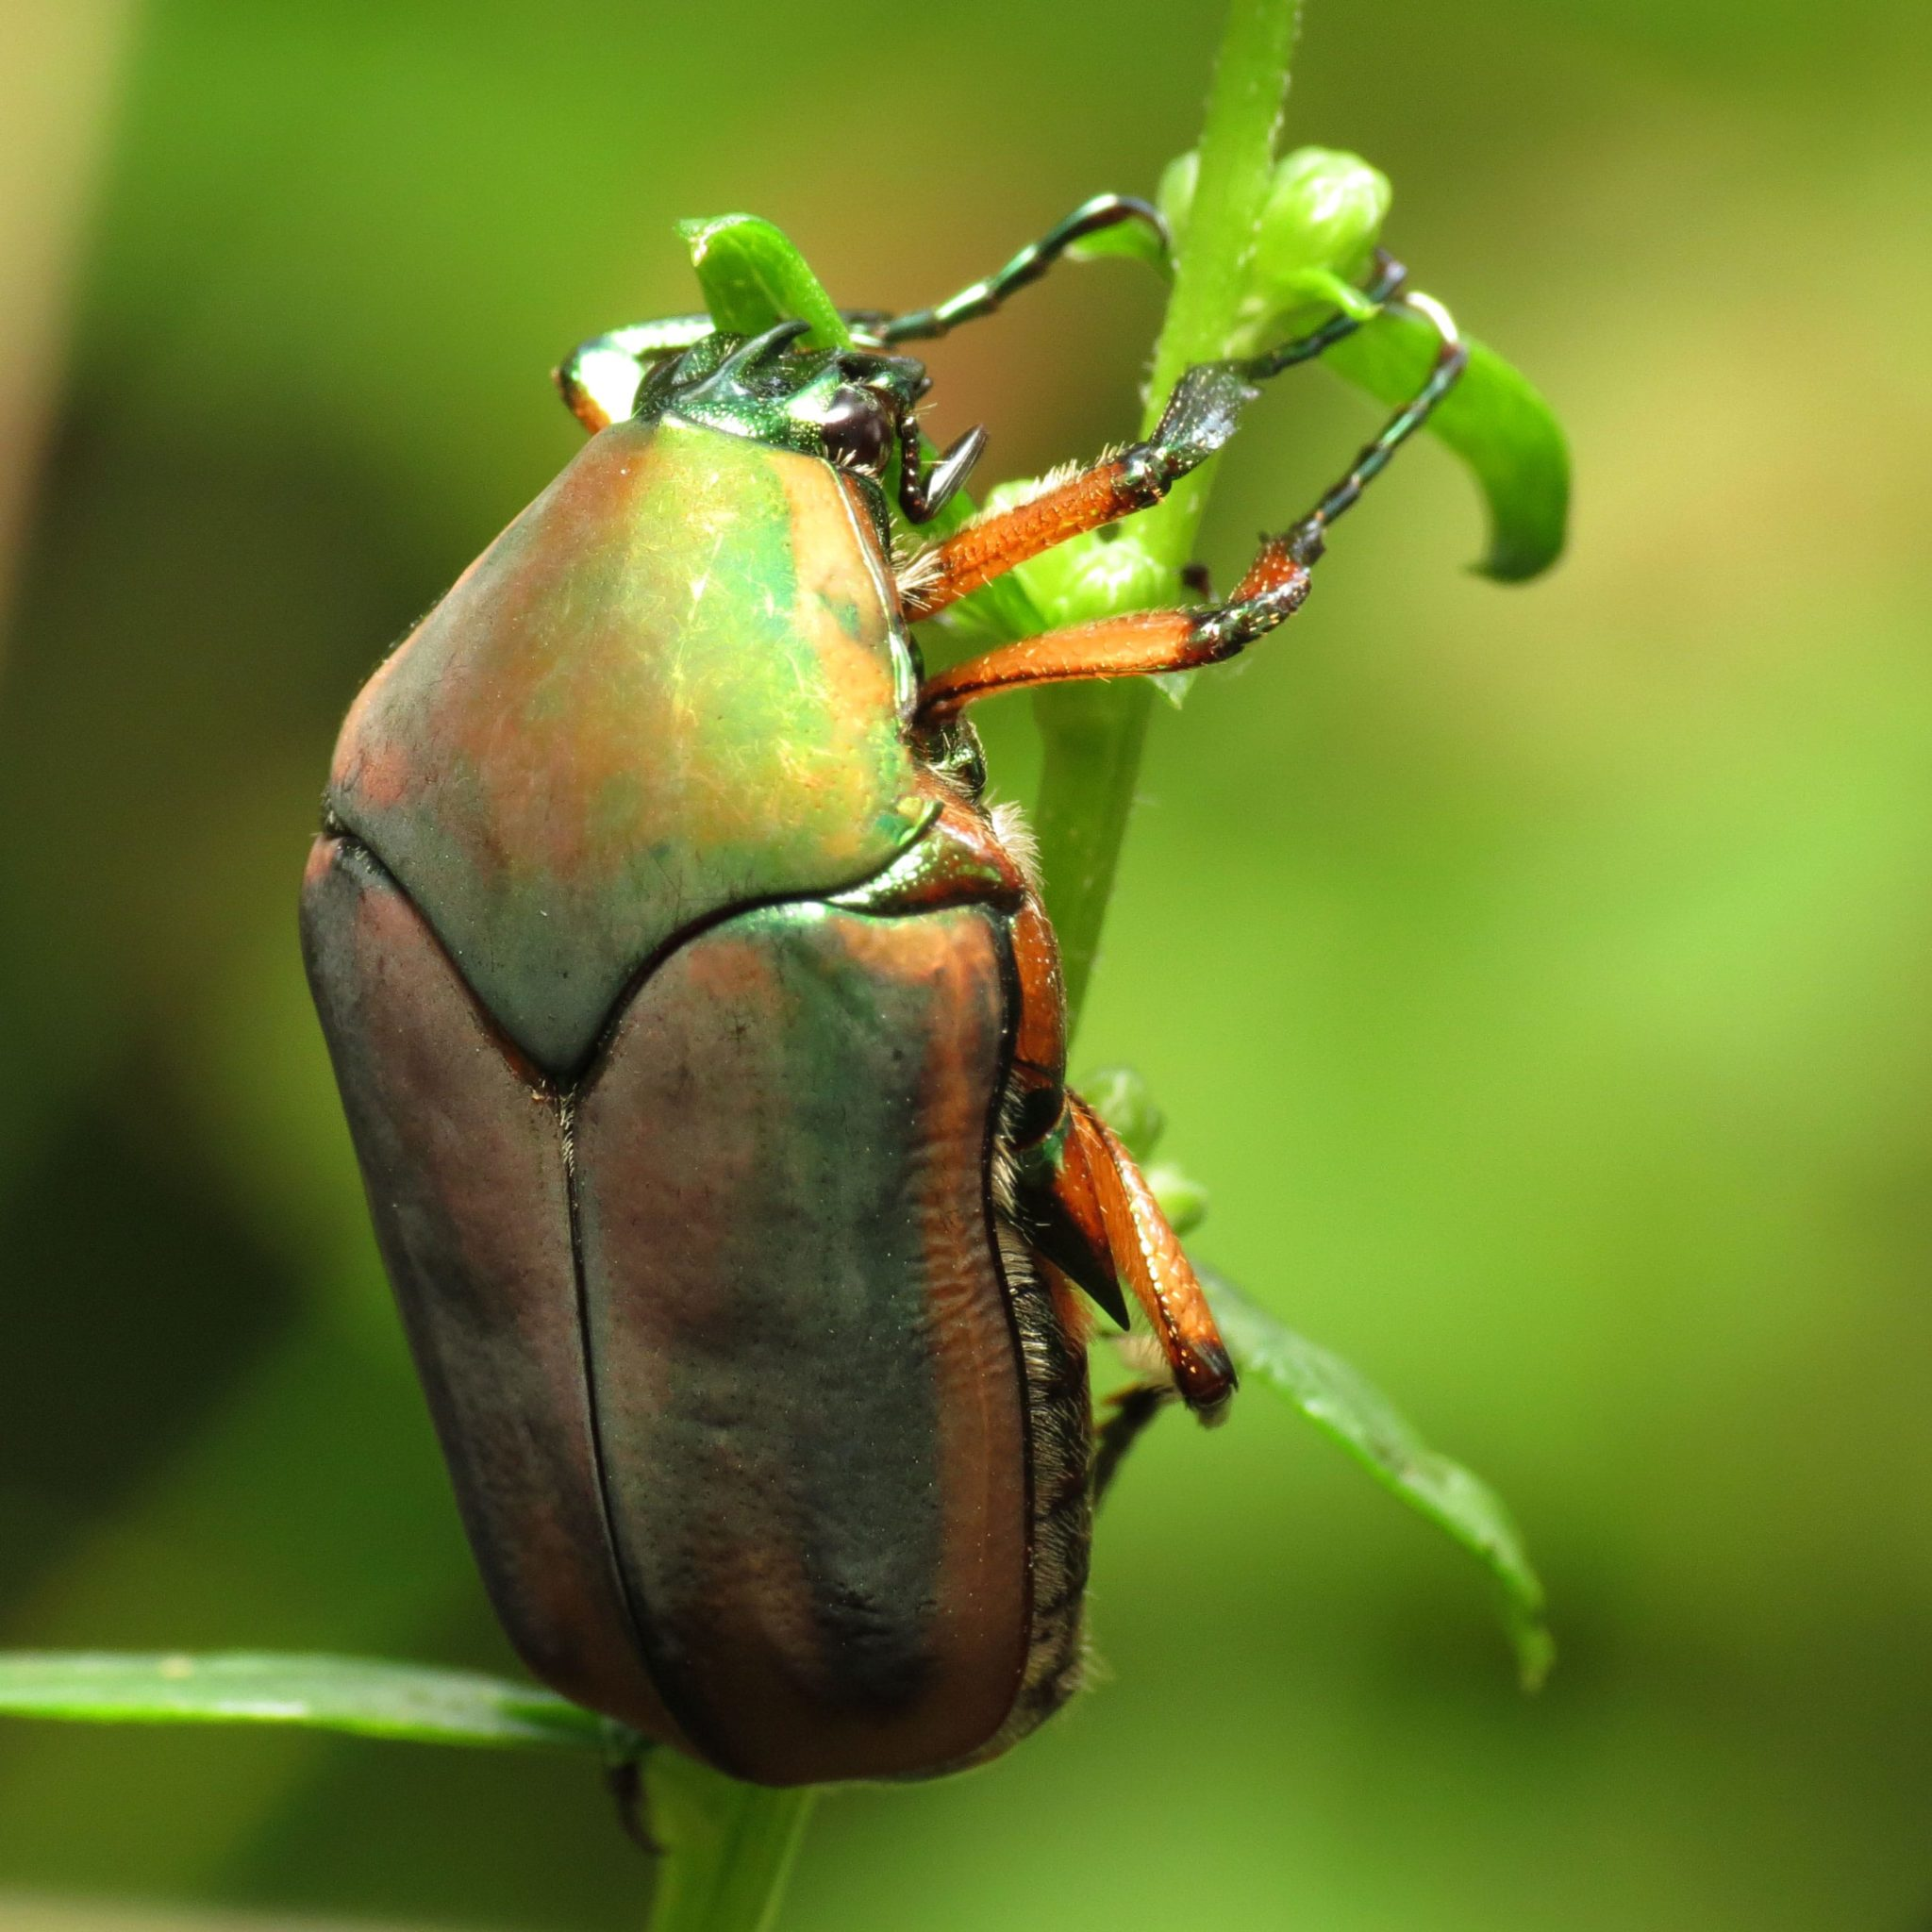 A spring friend is a beetle in May. How many legs does the beetle have and what are they used for